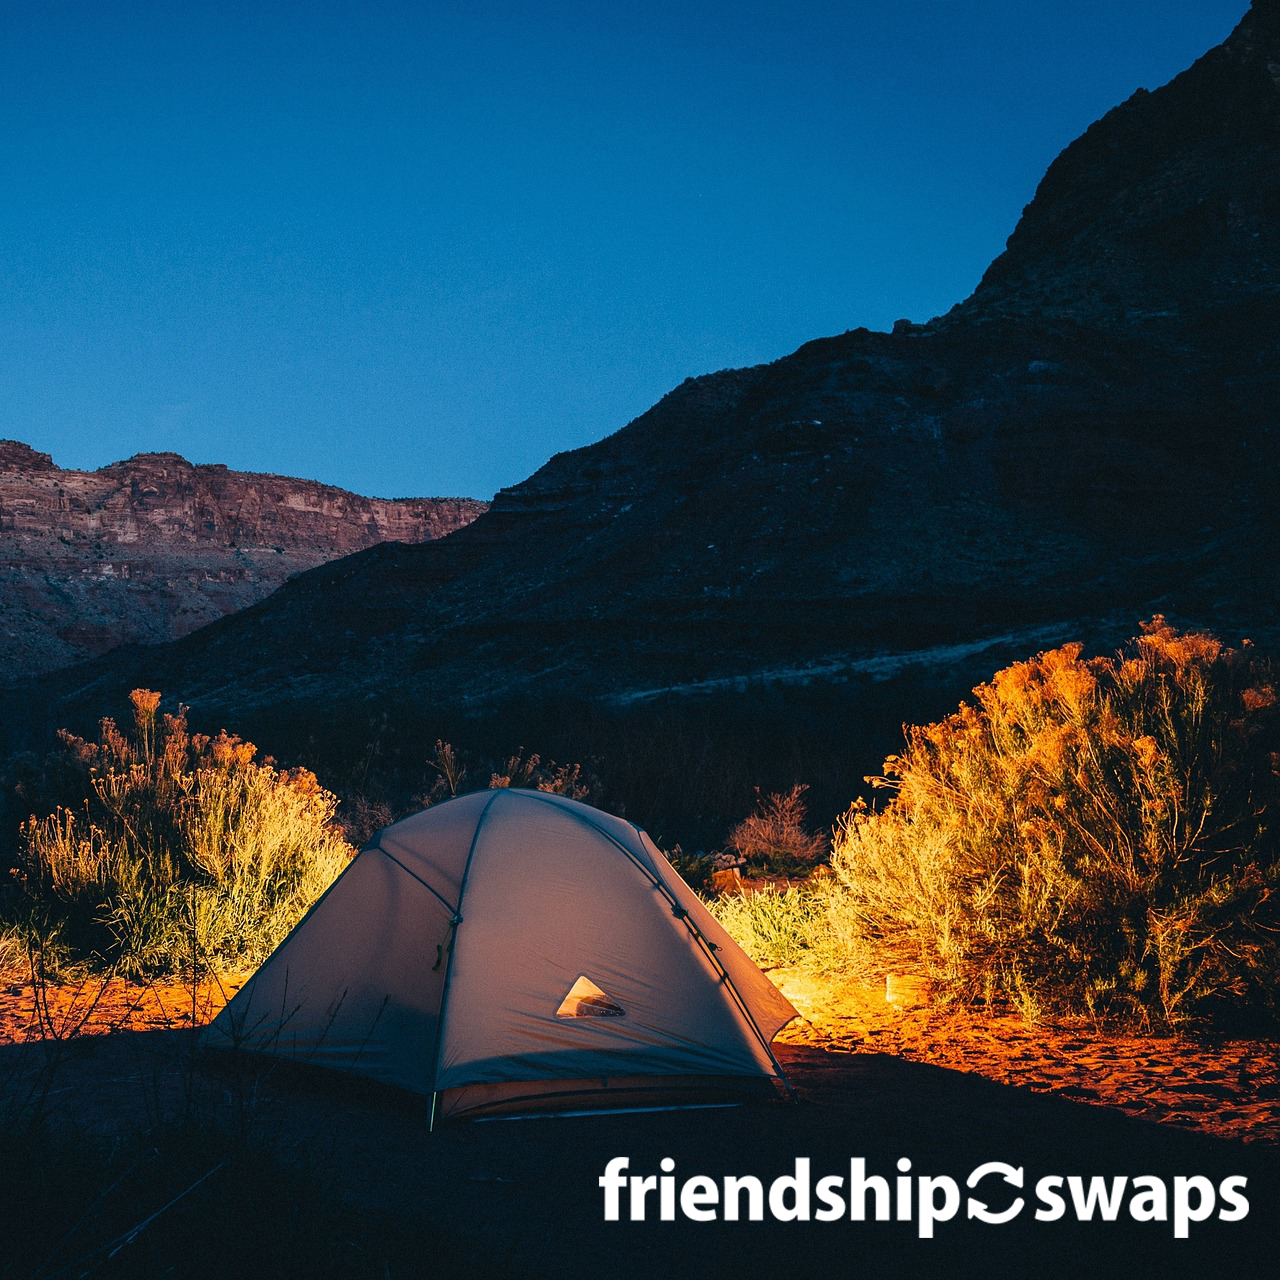 Look no further for all the camp swaps you can imagine. We have compiled a list of the most popular and easy to make camp swaps! #friendshipswaps #swaps #girlscoutswaps #girlscouts #tradition #trading